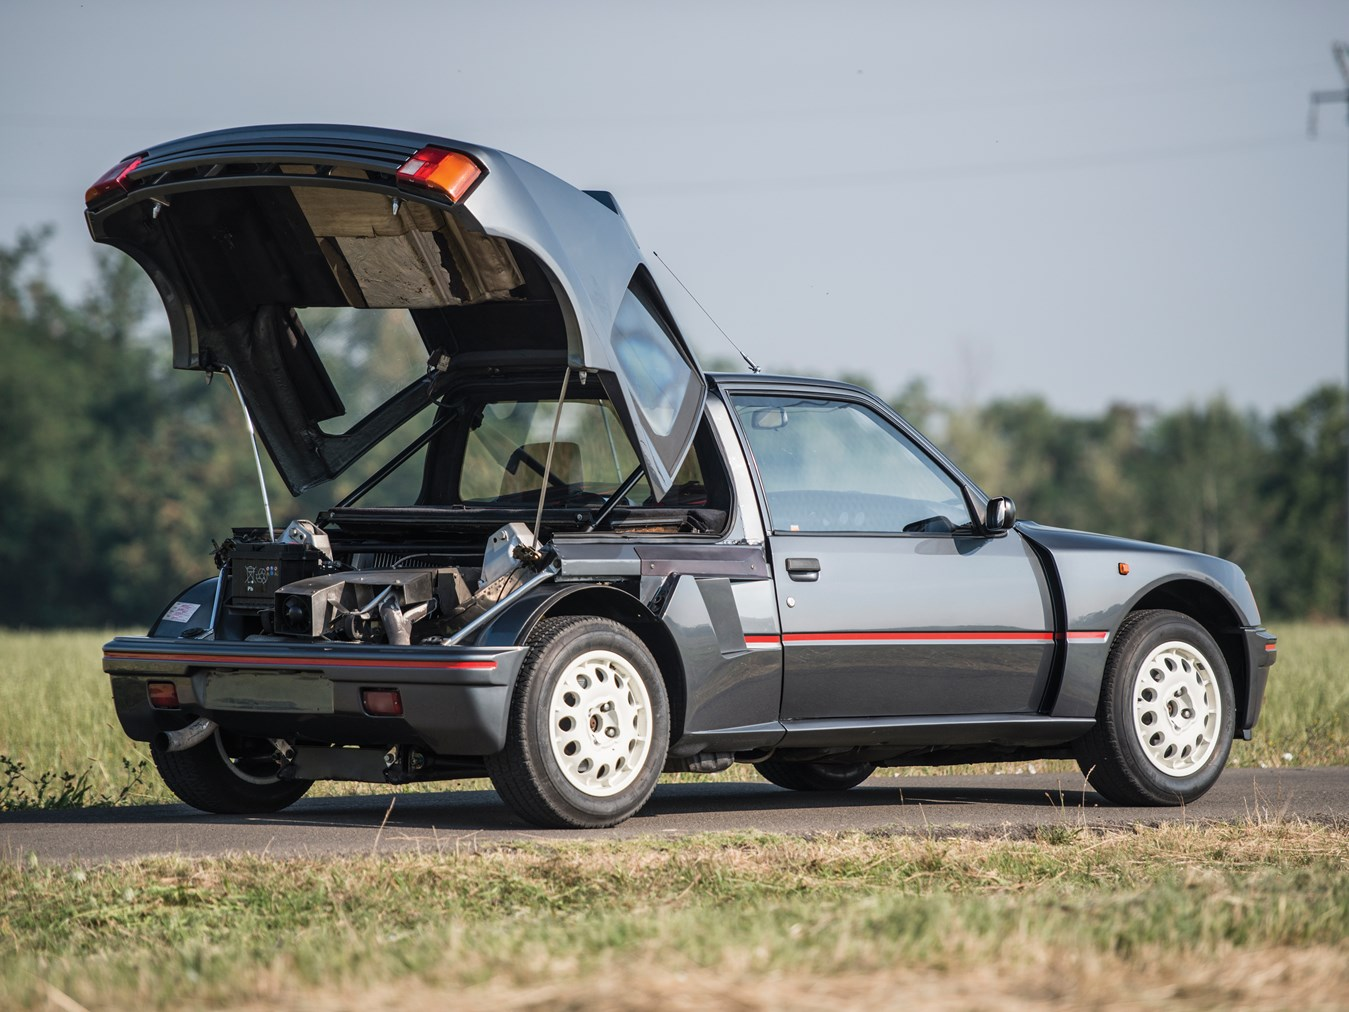 rm sotheby 39 s 1984 peugeot 205 turbo 16 london 2015. Black Bedroom Furniture Sets. Home Design Ideas